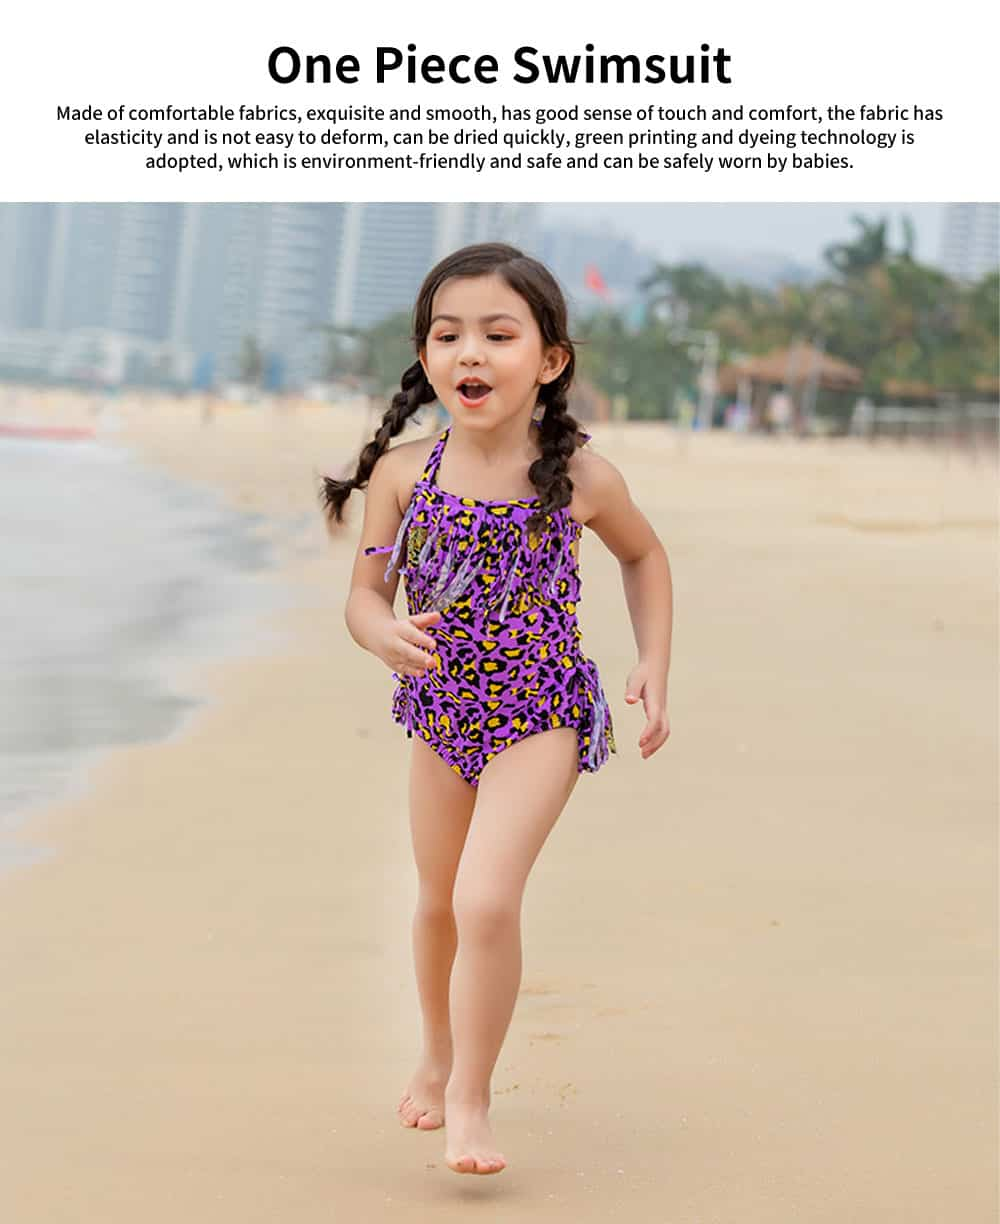 Bathing Suit One Piece Tassels Leopard Print Cute Swimsuit for Girls Hot Spring Vacation Necessary Swimsuit 0